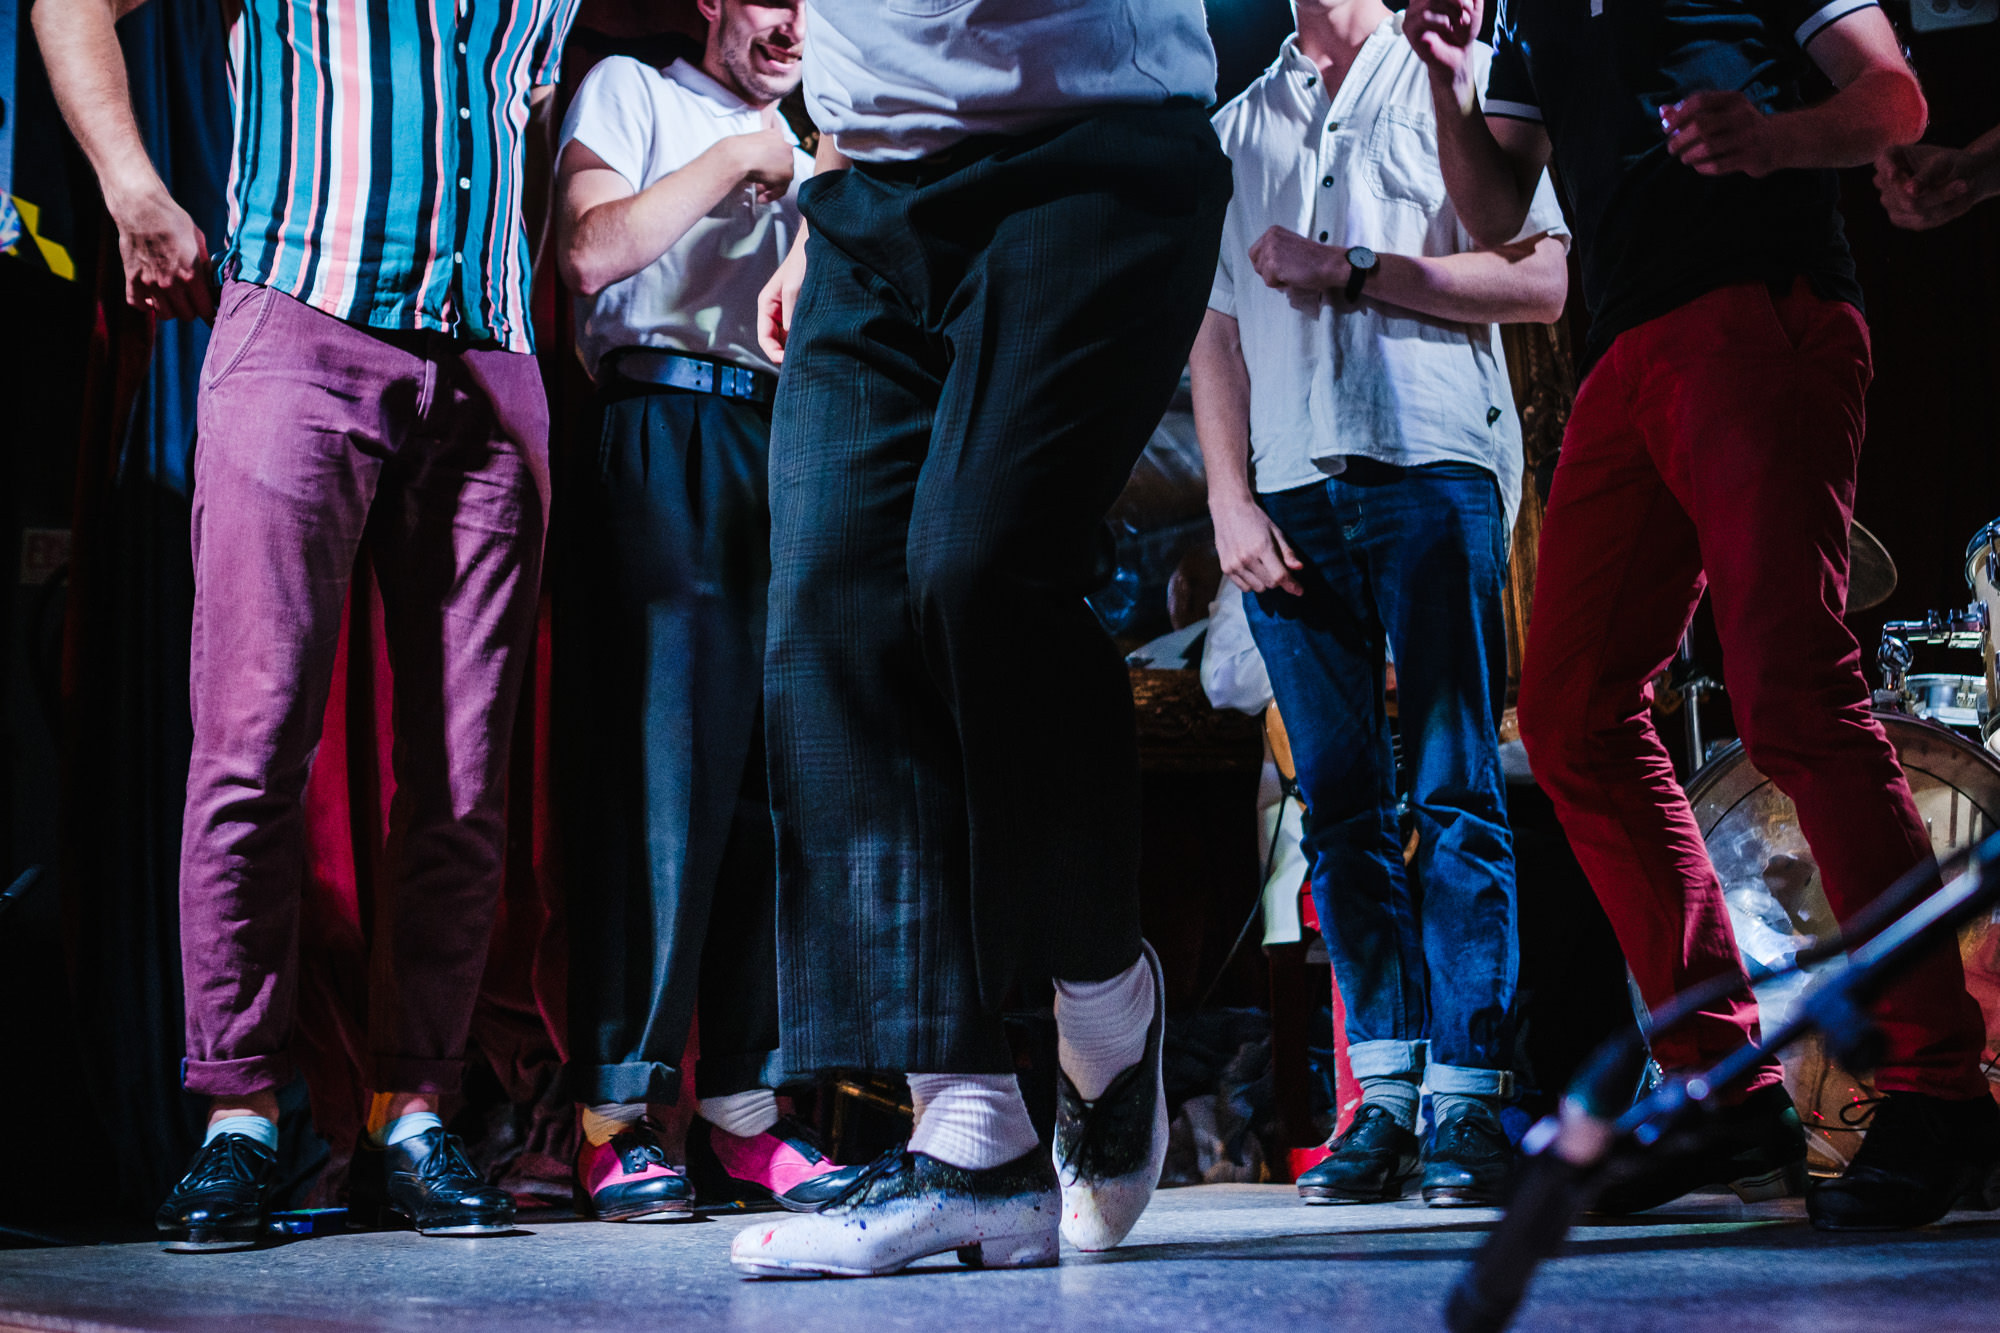 Tap dancer show live in London